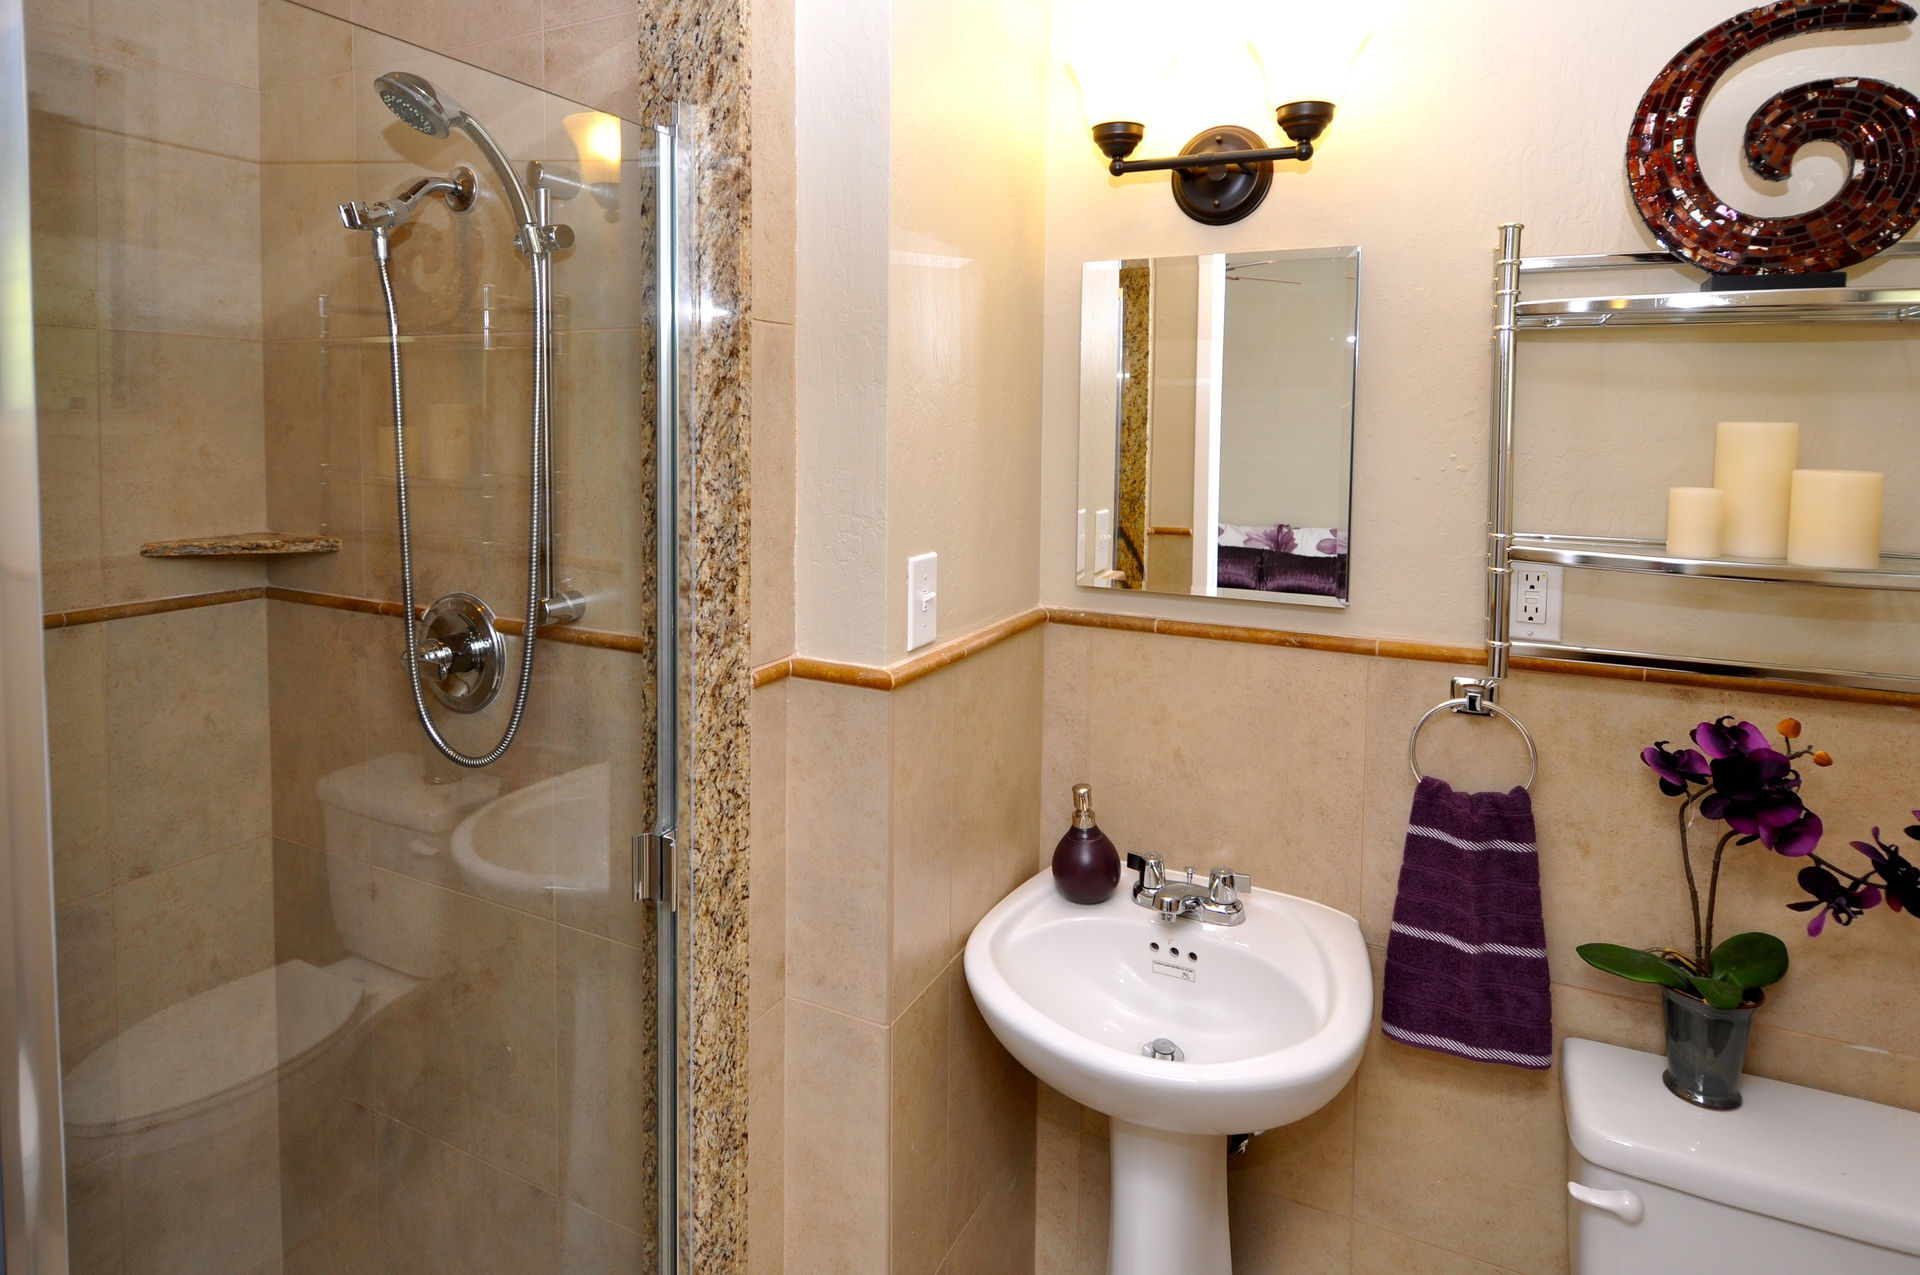 Bathroom remodeling honolulu - From Installations To Home Inspections Browns Plumbing And Solar Offers All The Plumbing Services You Need October 23 2015